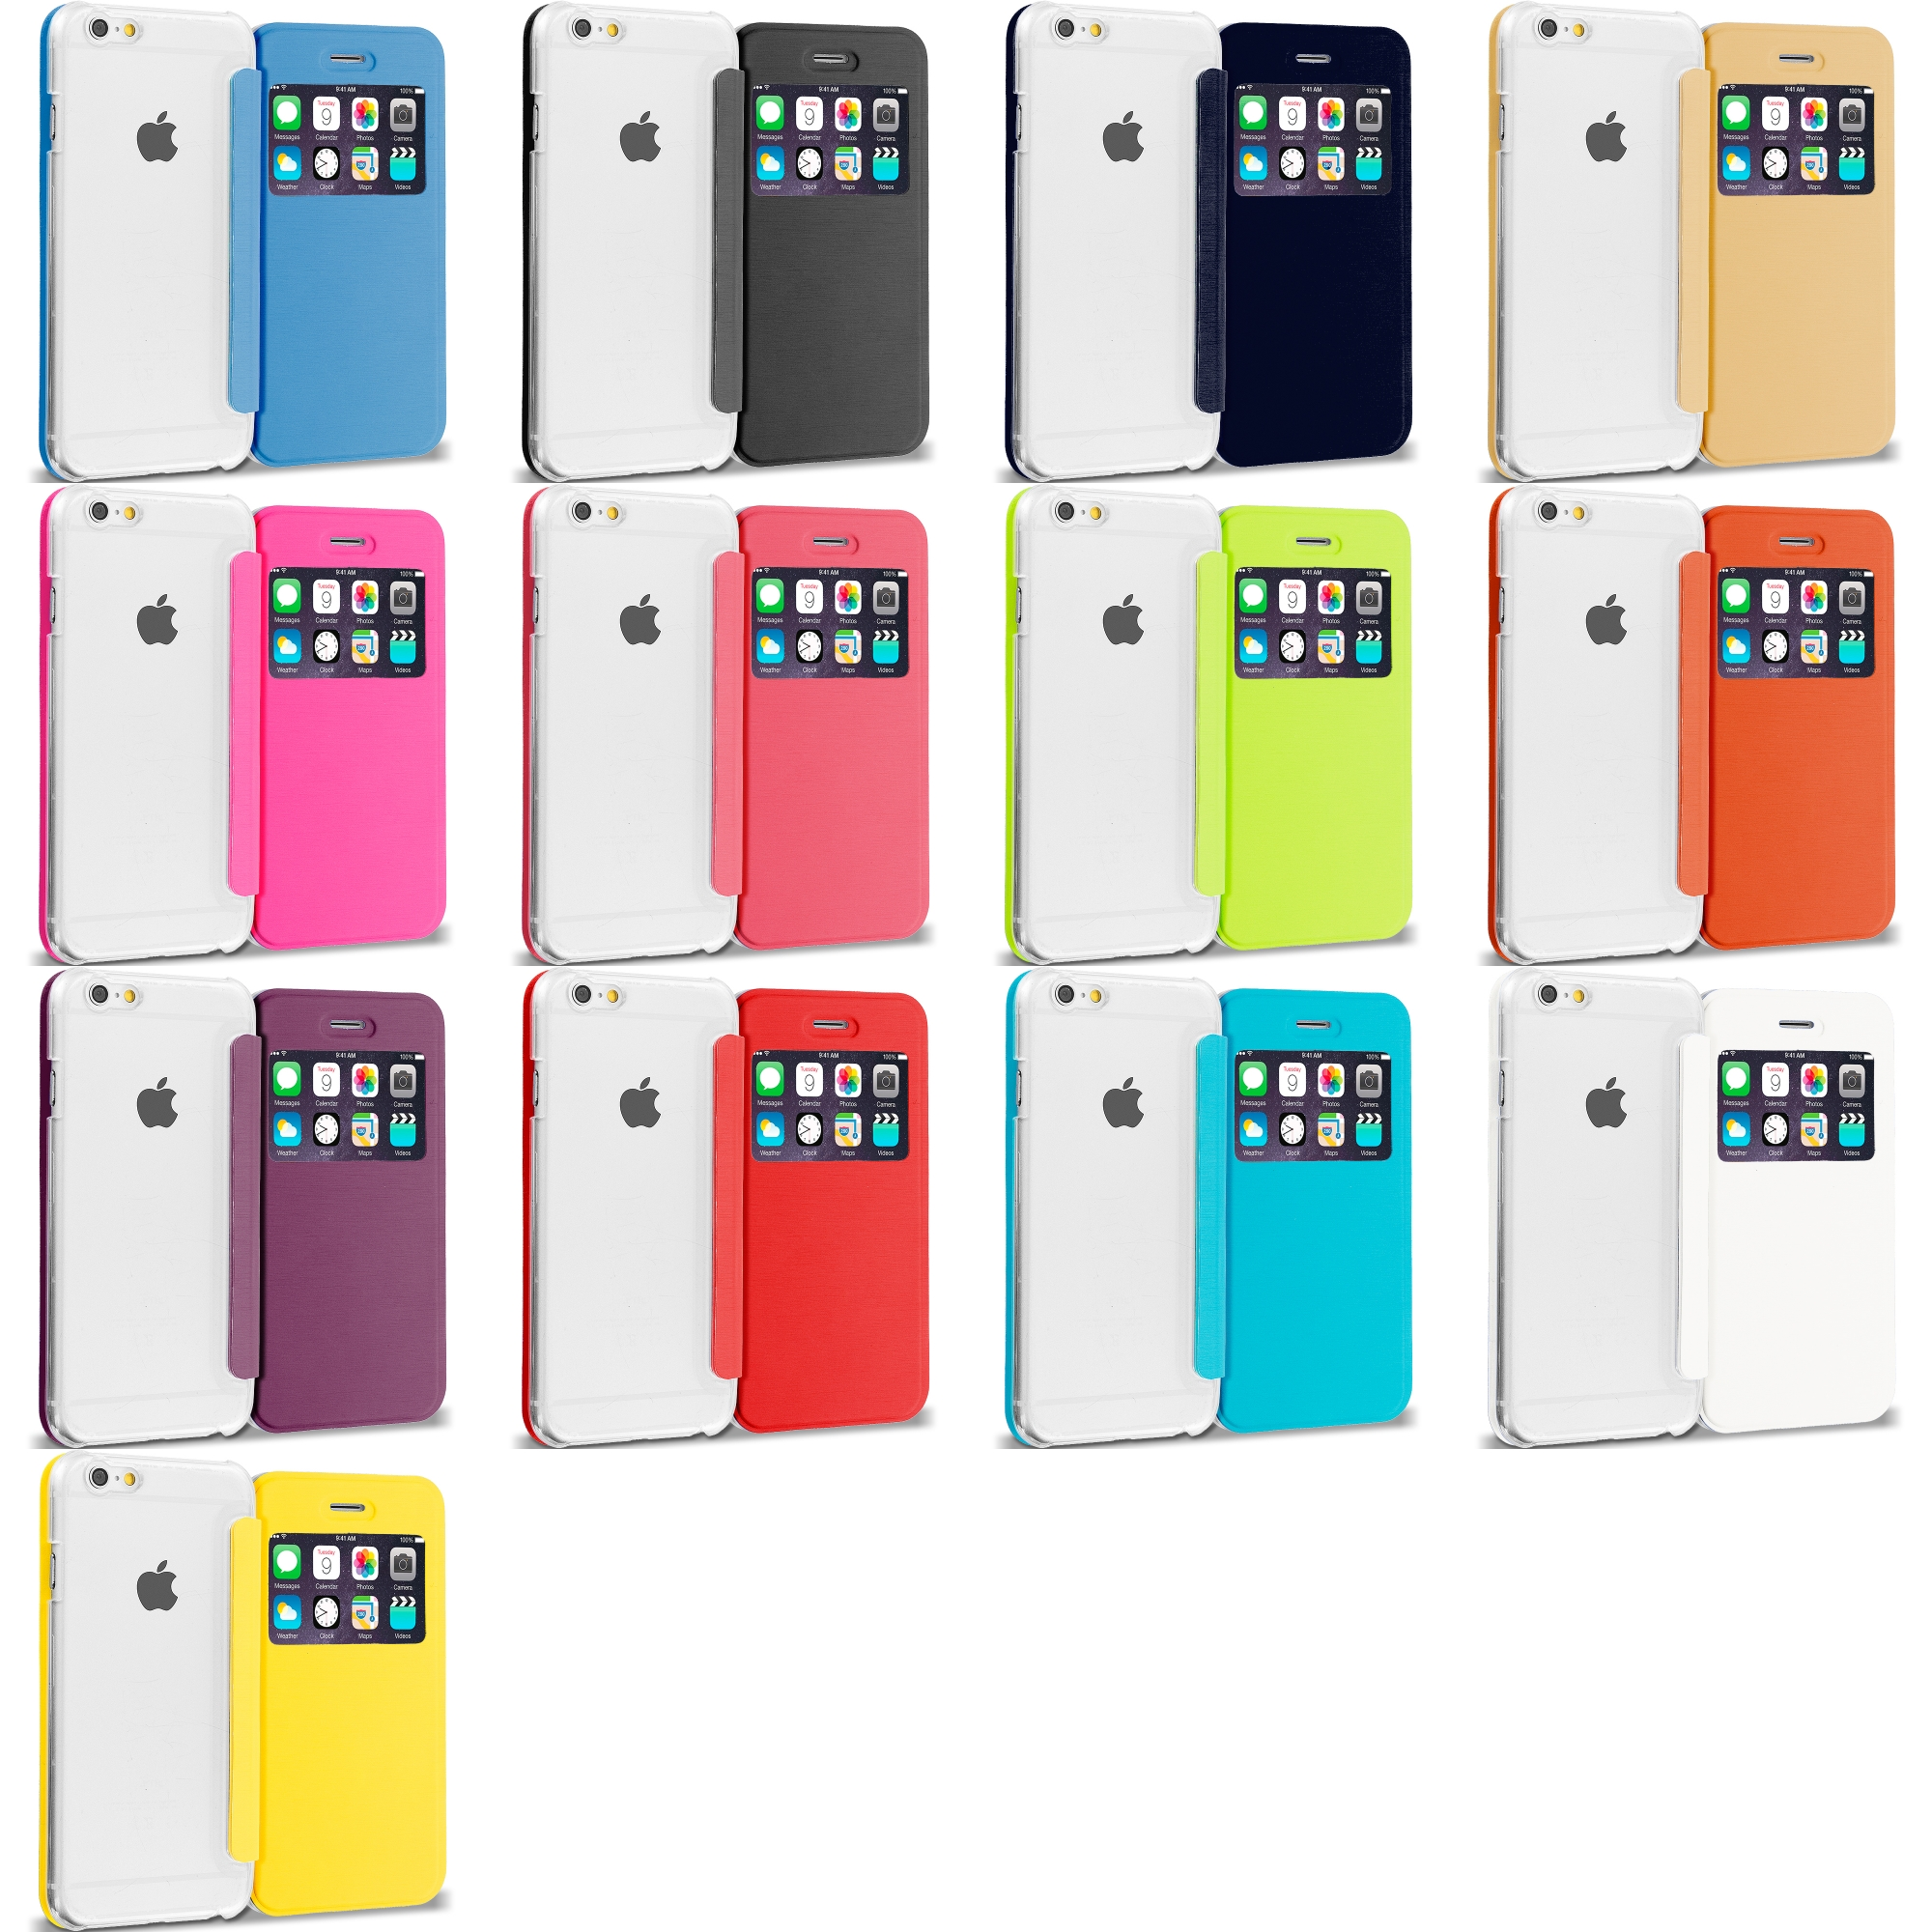 Apple iPhone 6 13 in 1 Bundle - Slim Hard Wallet Flip Case Cover Clear Back With Window